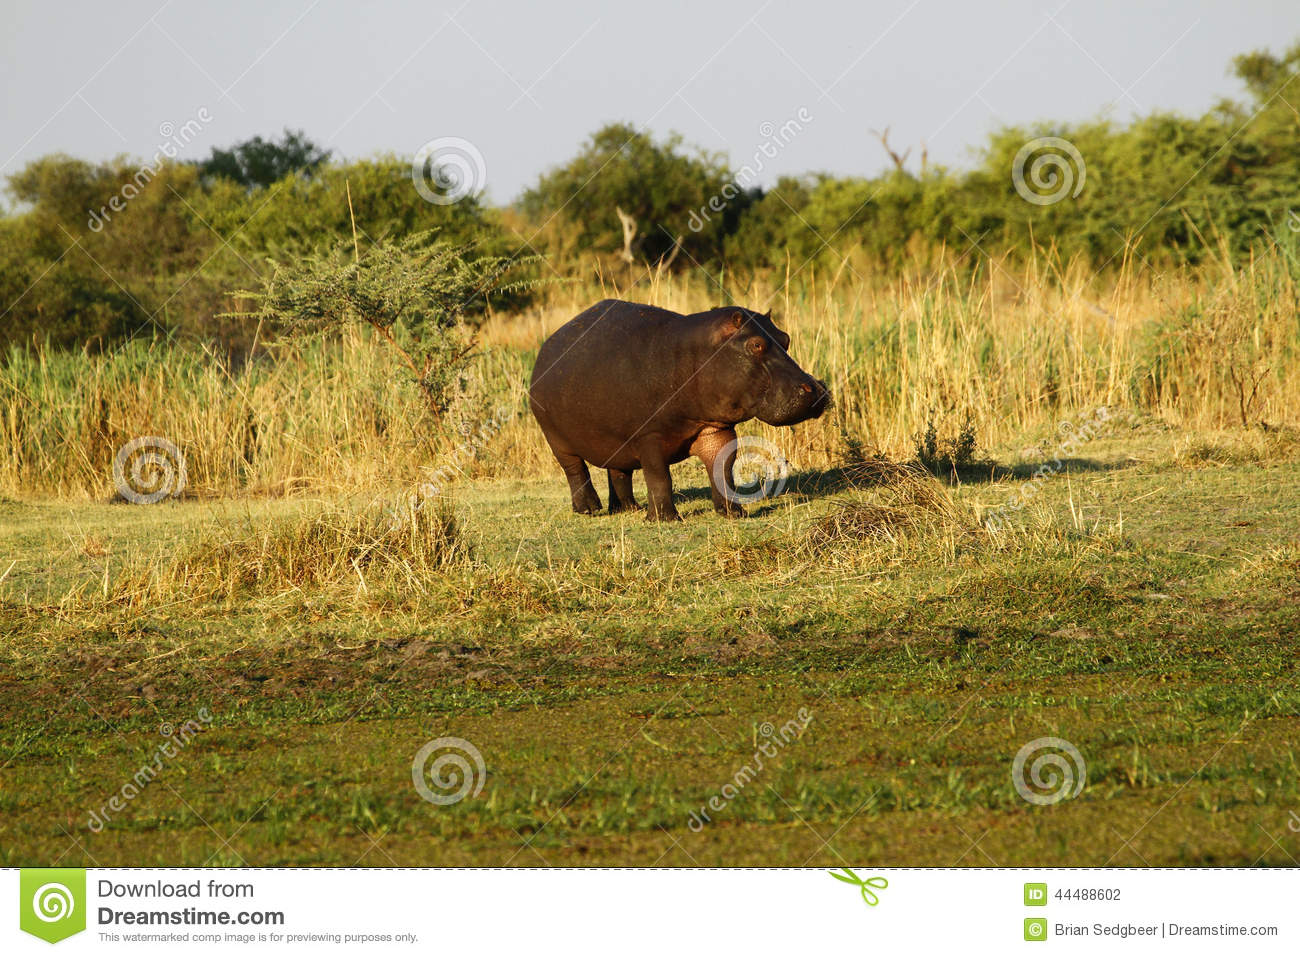 Hippo Too close for comfort